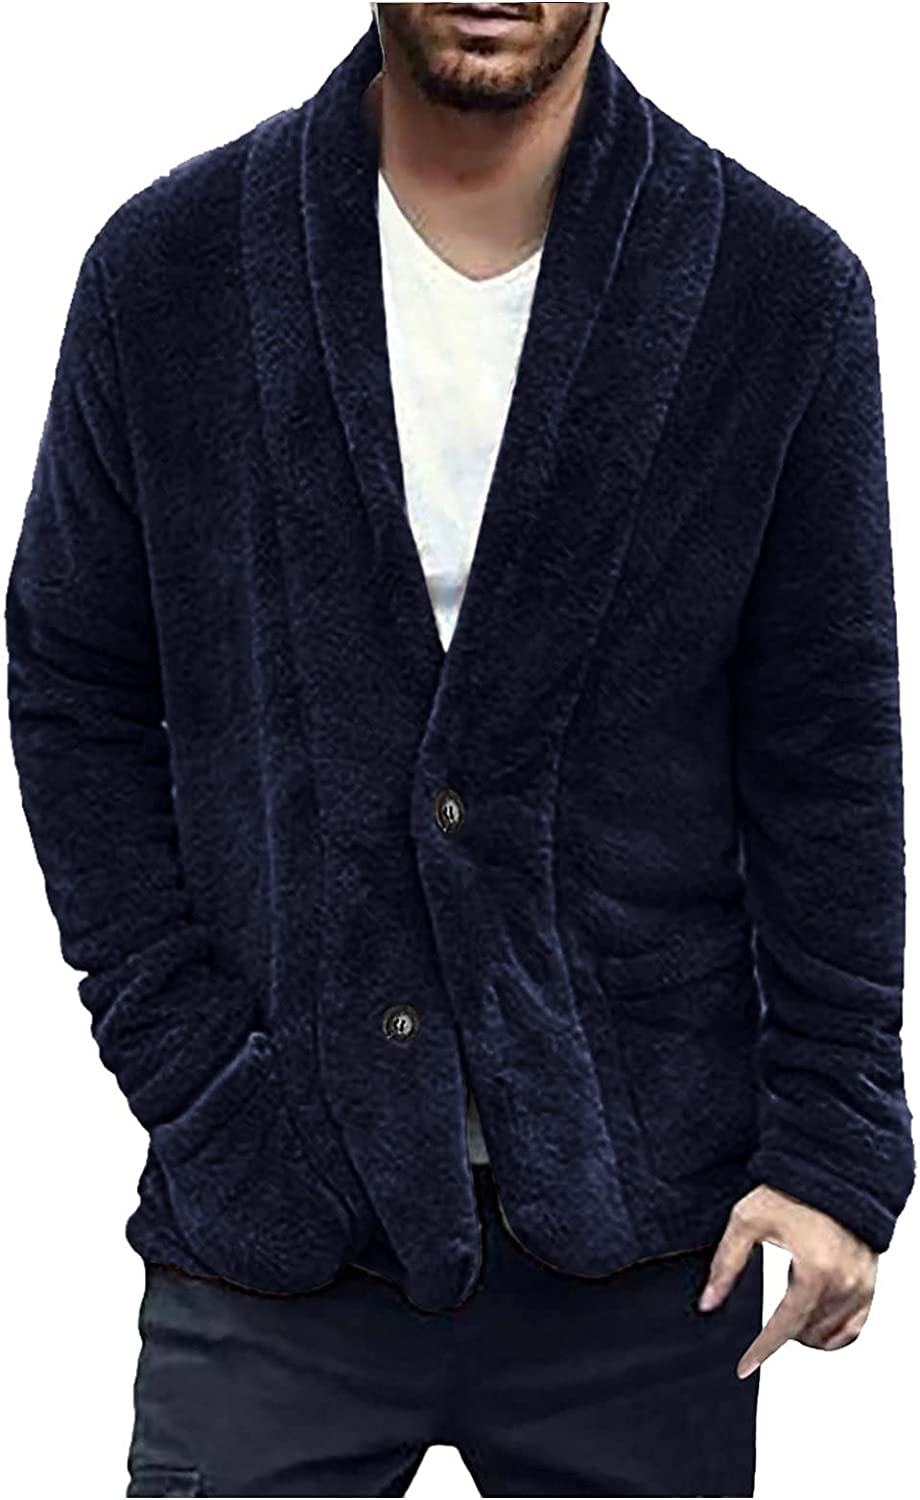 Mens Furry Cardigan Jacket Tops Double-sided Warm Plush Button Cardigan Jackets